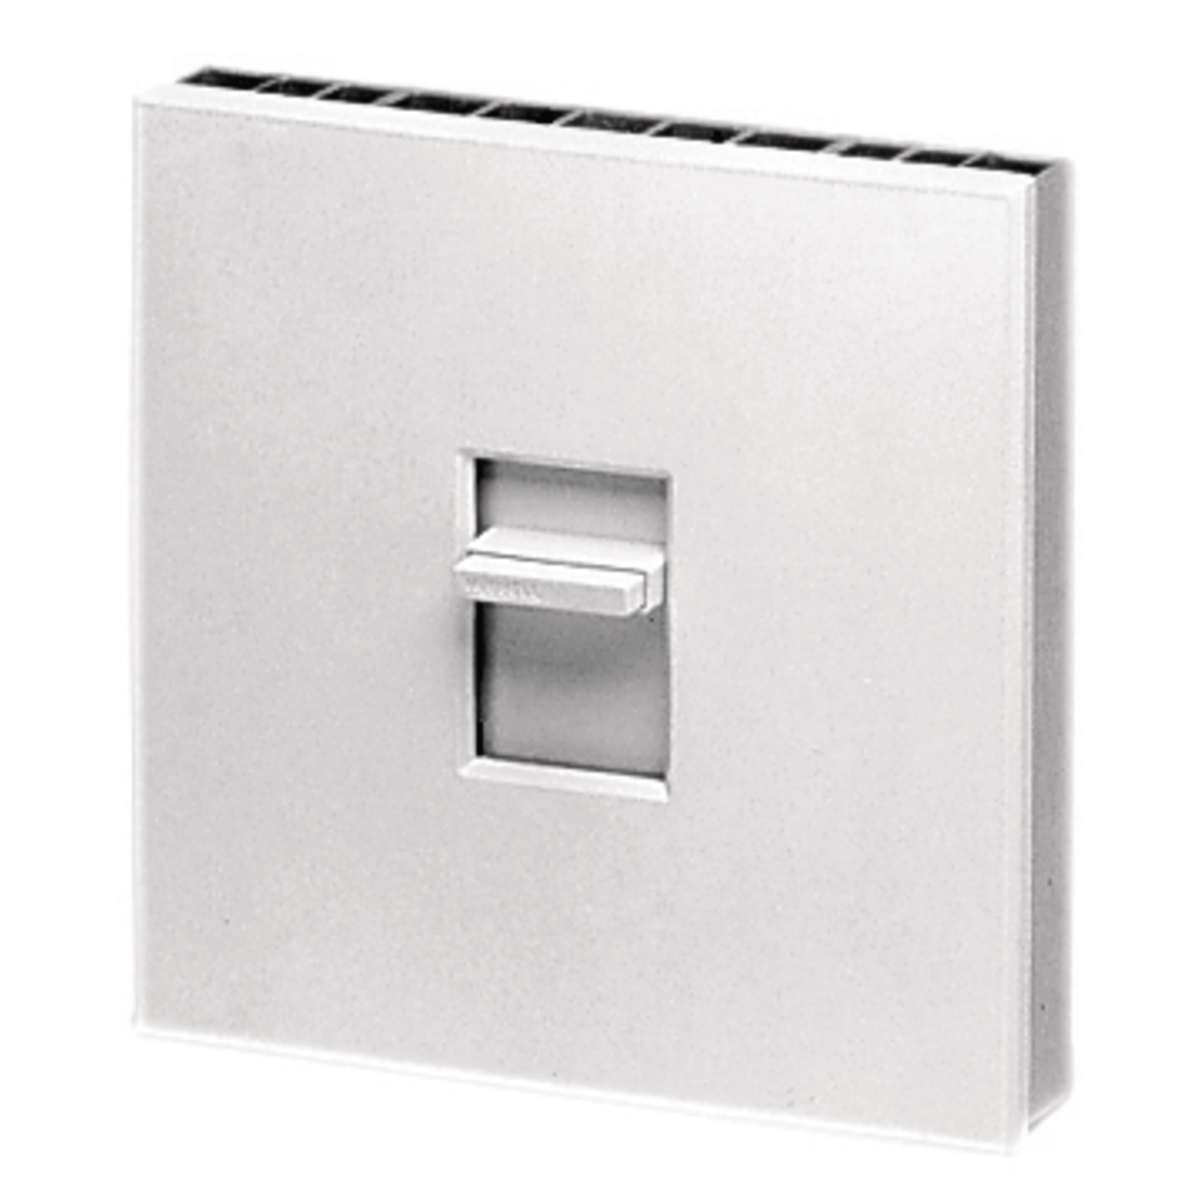 HUBAS153 ARCH SLIDE DIMMER, 3 WAY, 1500W, WHITE ,AS153, HUBBELL